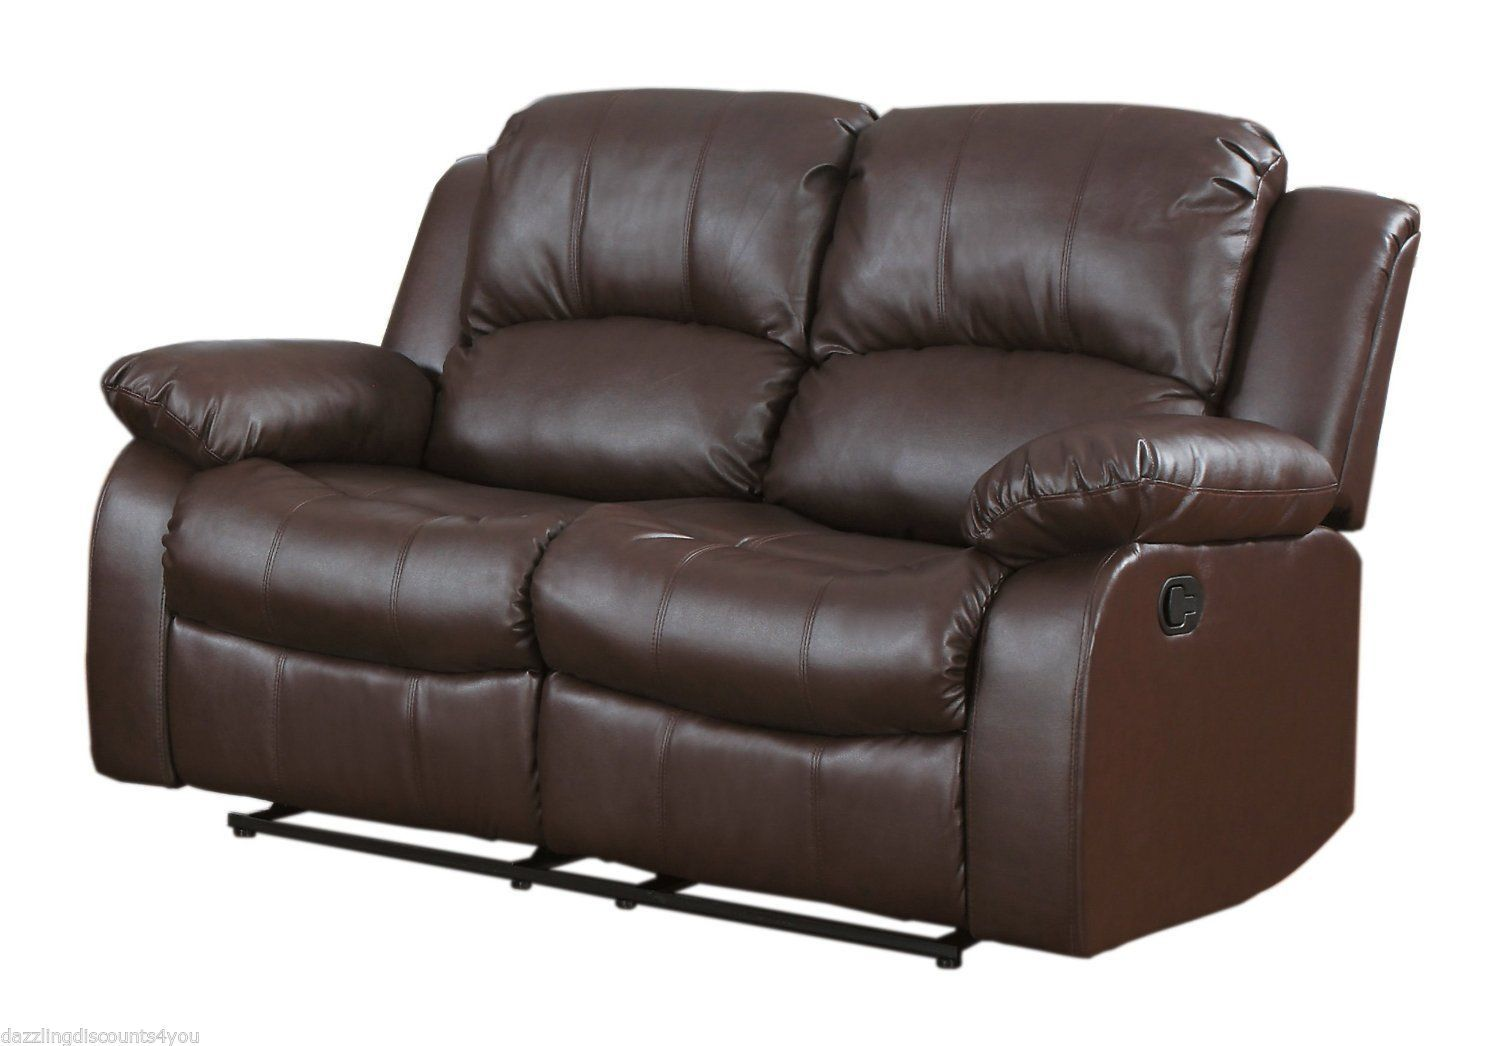 Sofas Loveseats And Chaises 38208 Traditional Brown Love Seat 2 Seater Bonded Leather Recliner